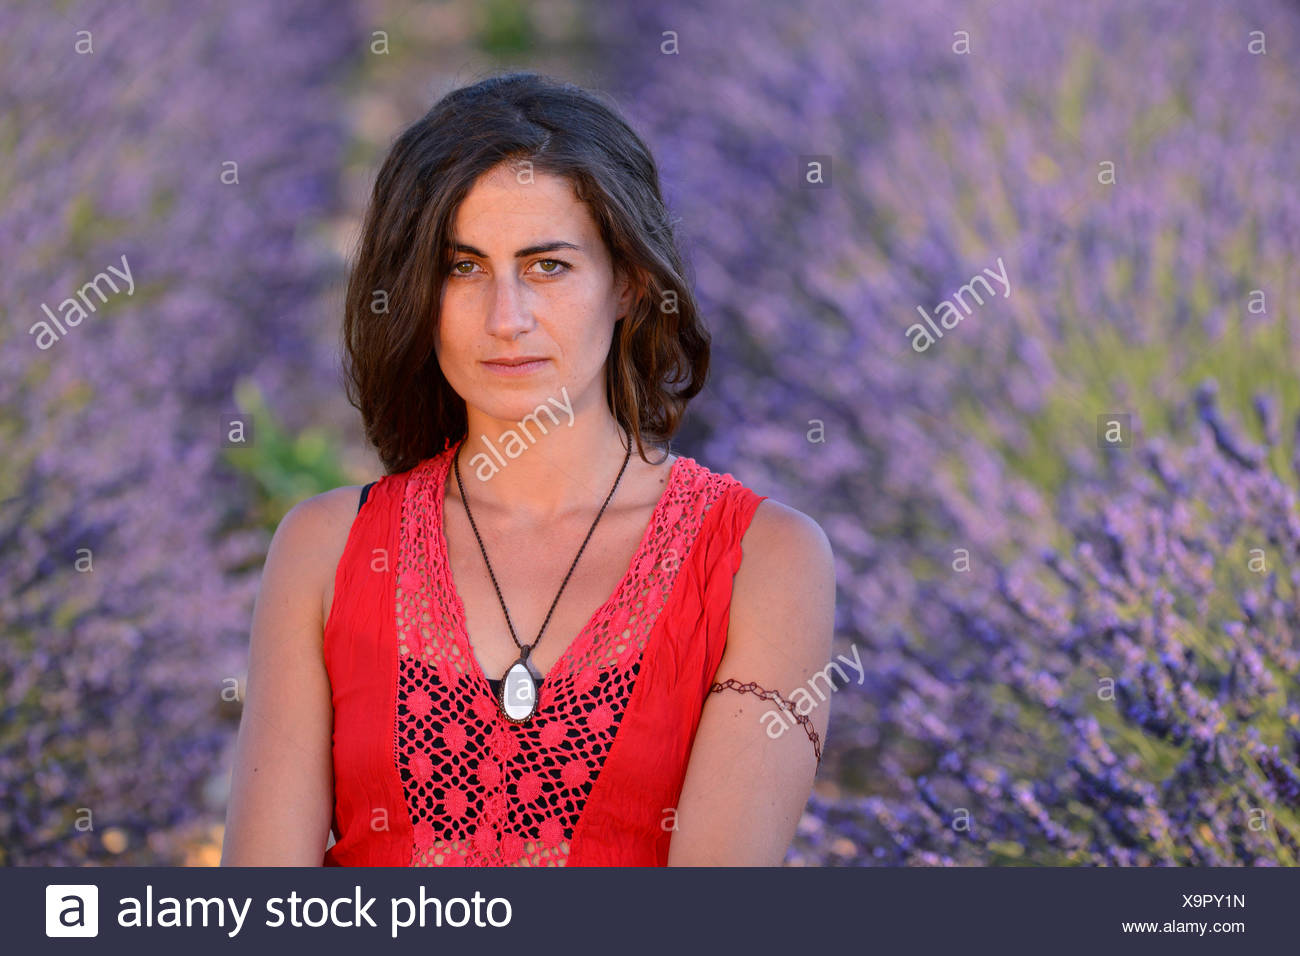 Europe France Provence Vaucluse Lavender Field Woman Red Dress Bloom Blooming Nature Girl French Brunette Flowers Flowering